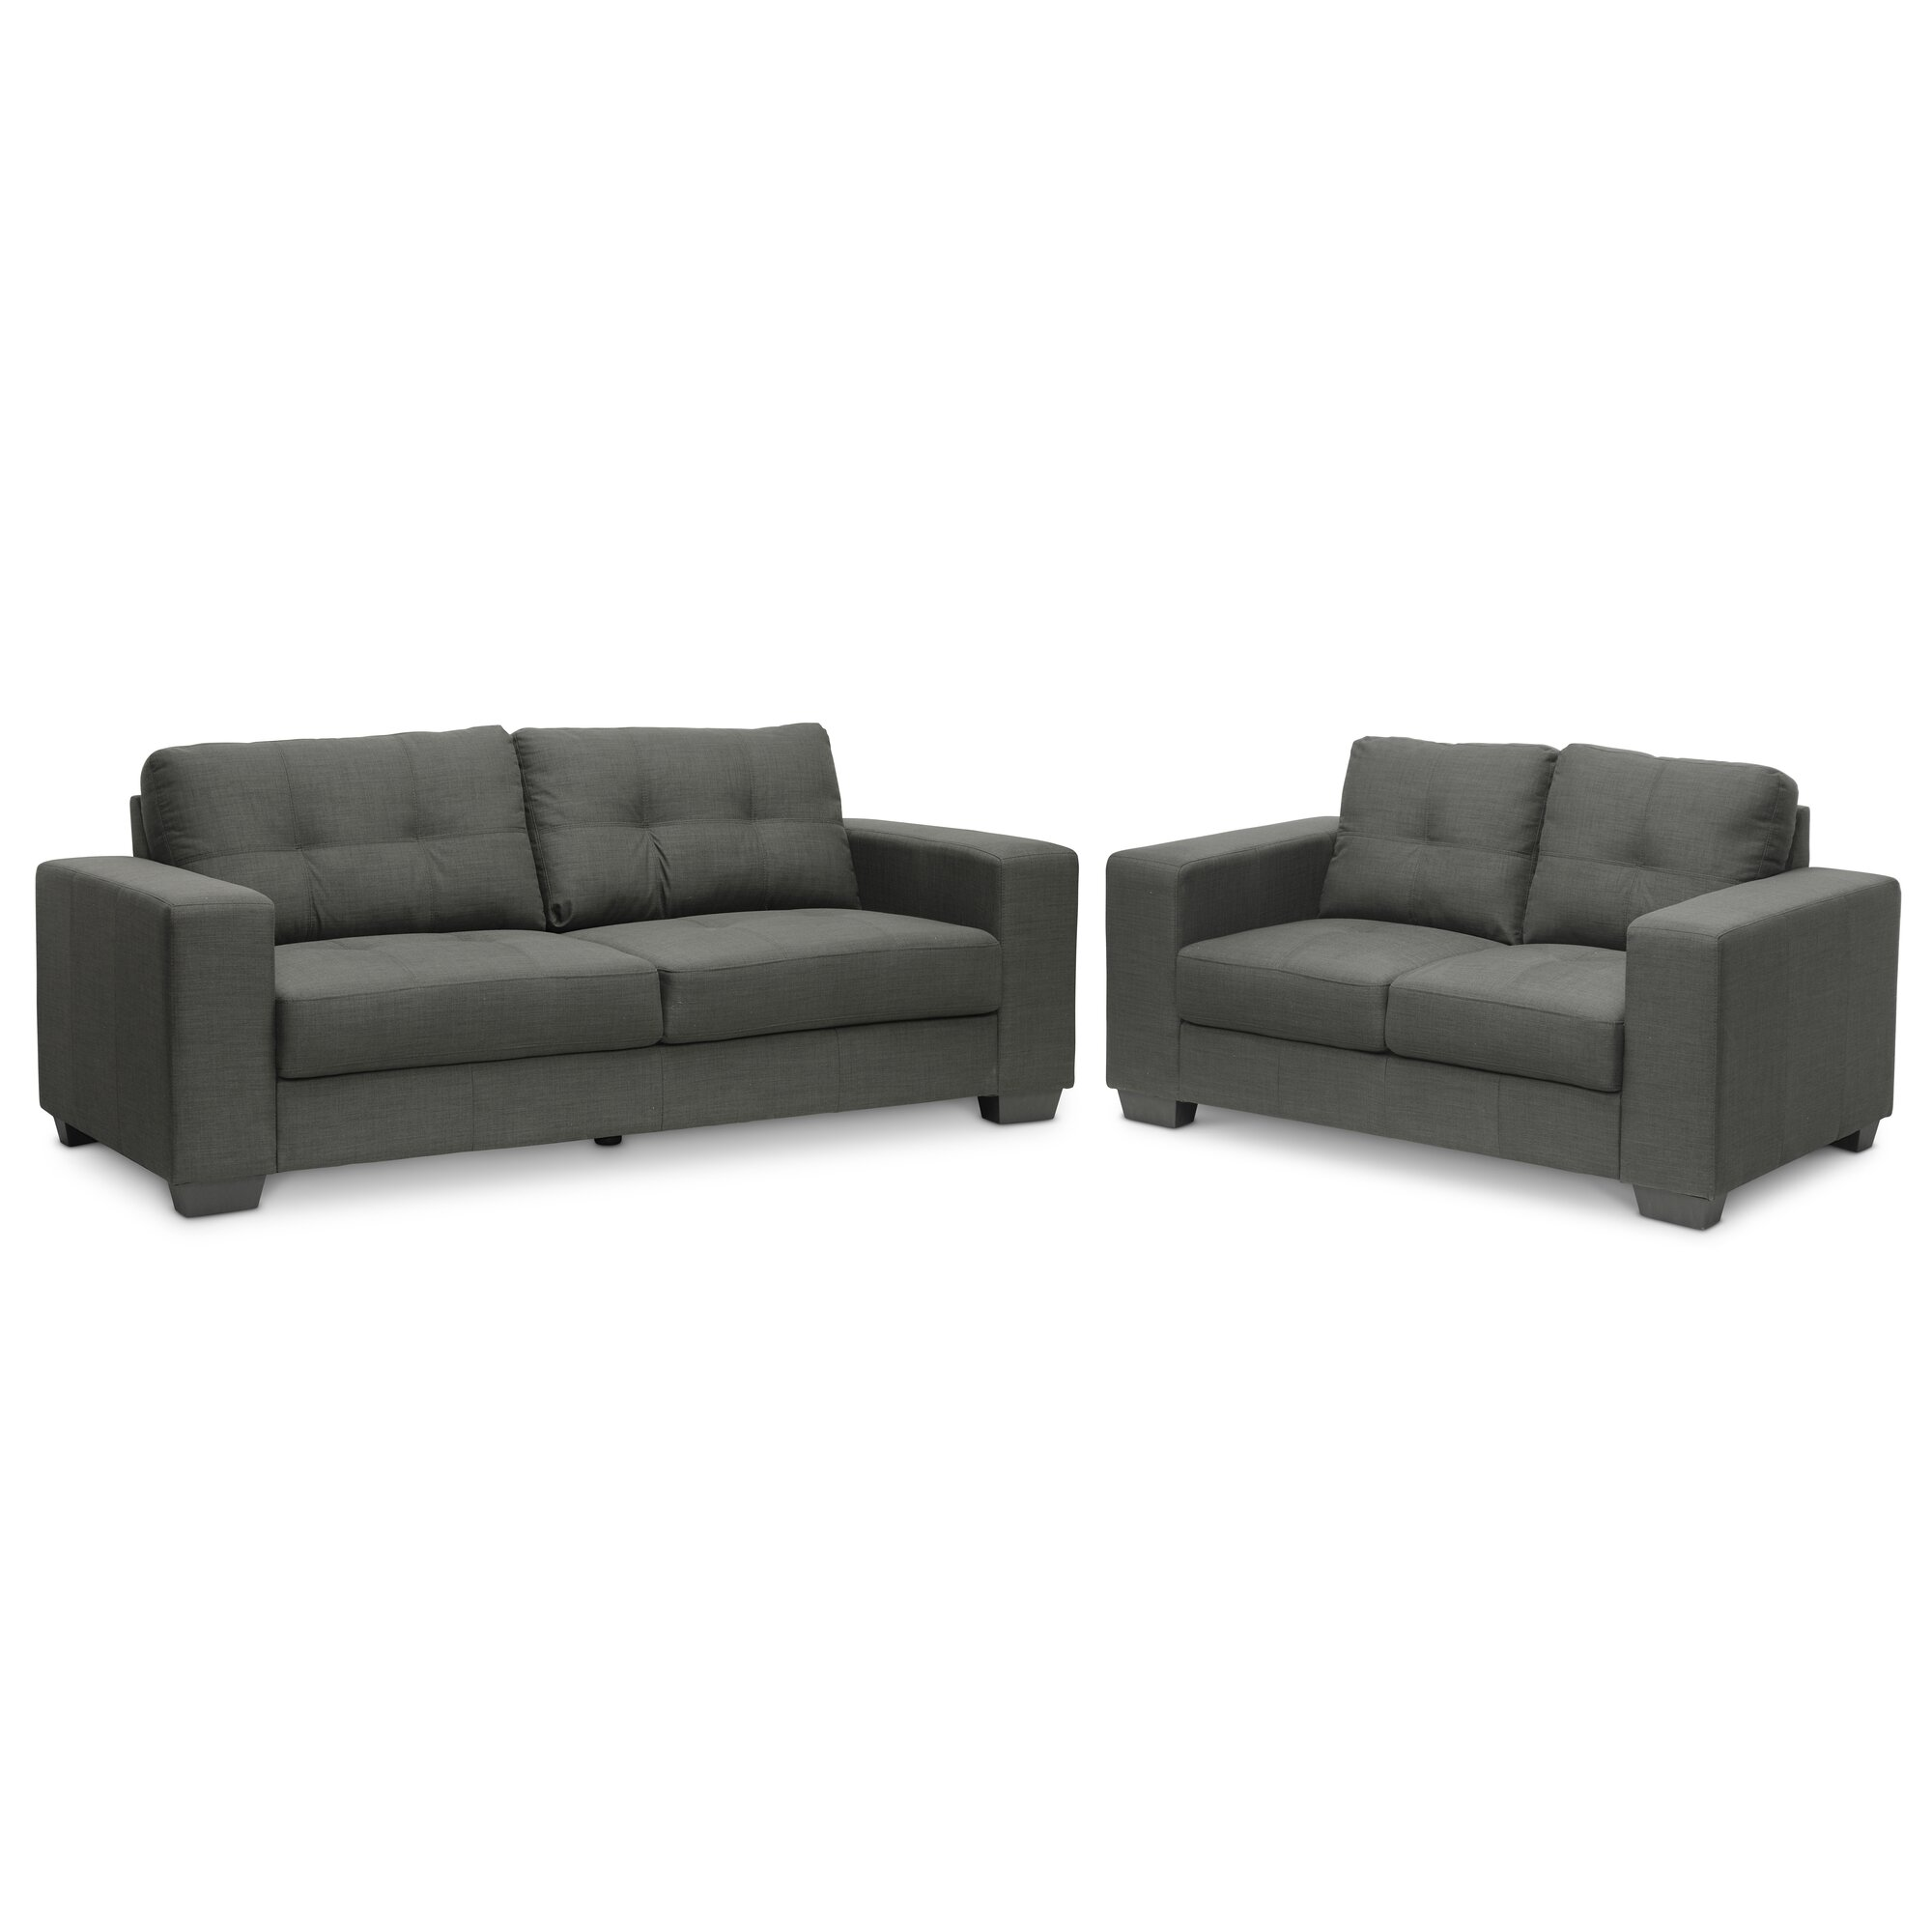 Wholesale interiors baxton studio 2 piece sofa set wayfair for 2 piece furniture set